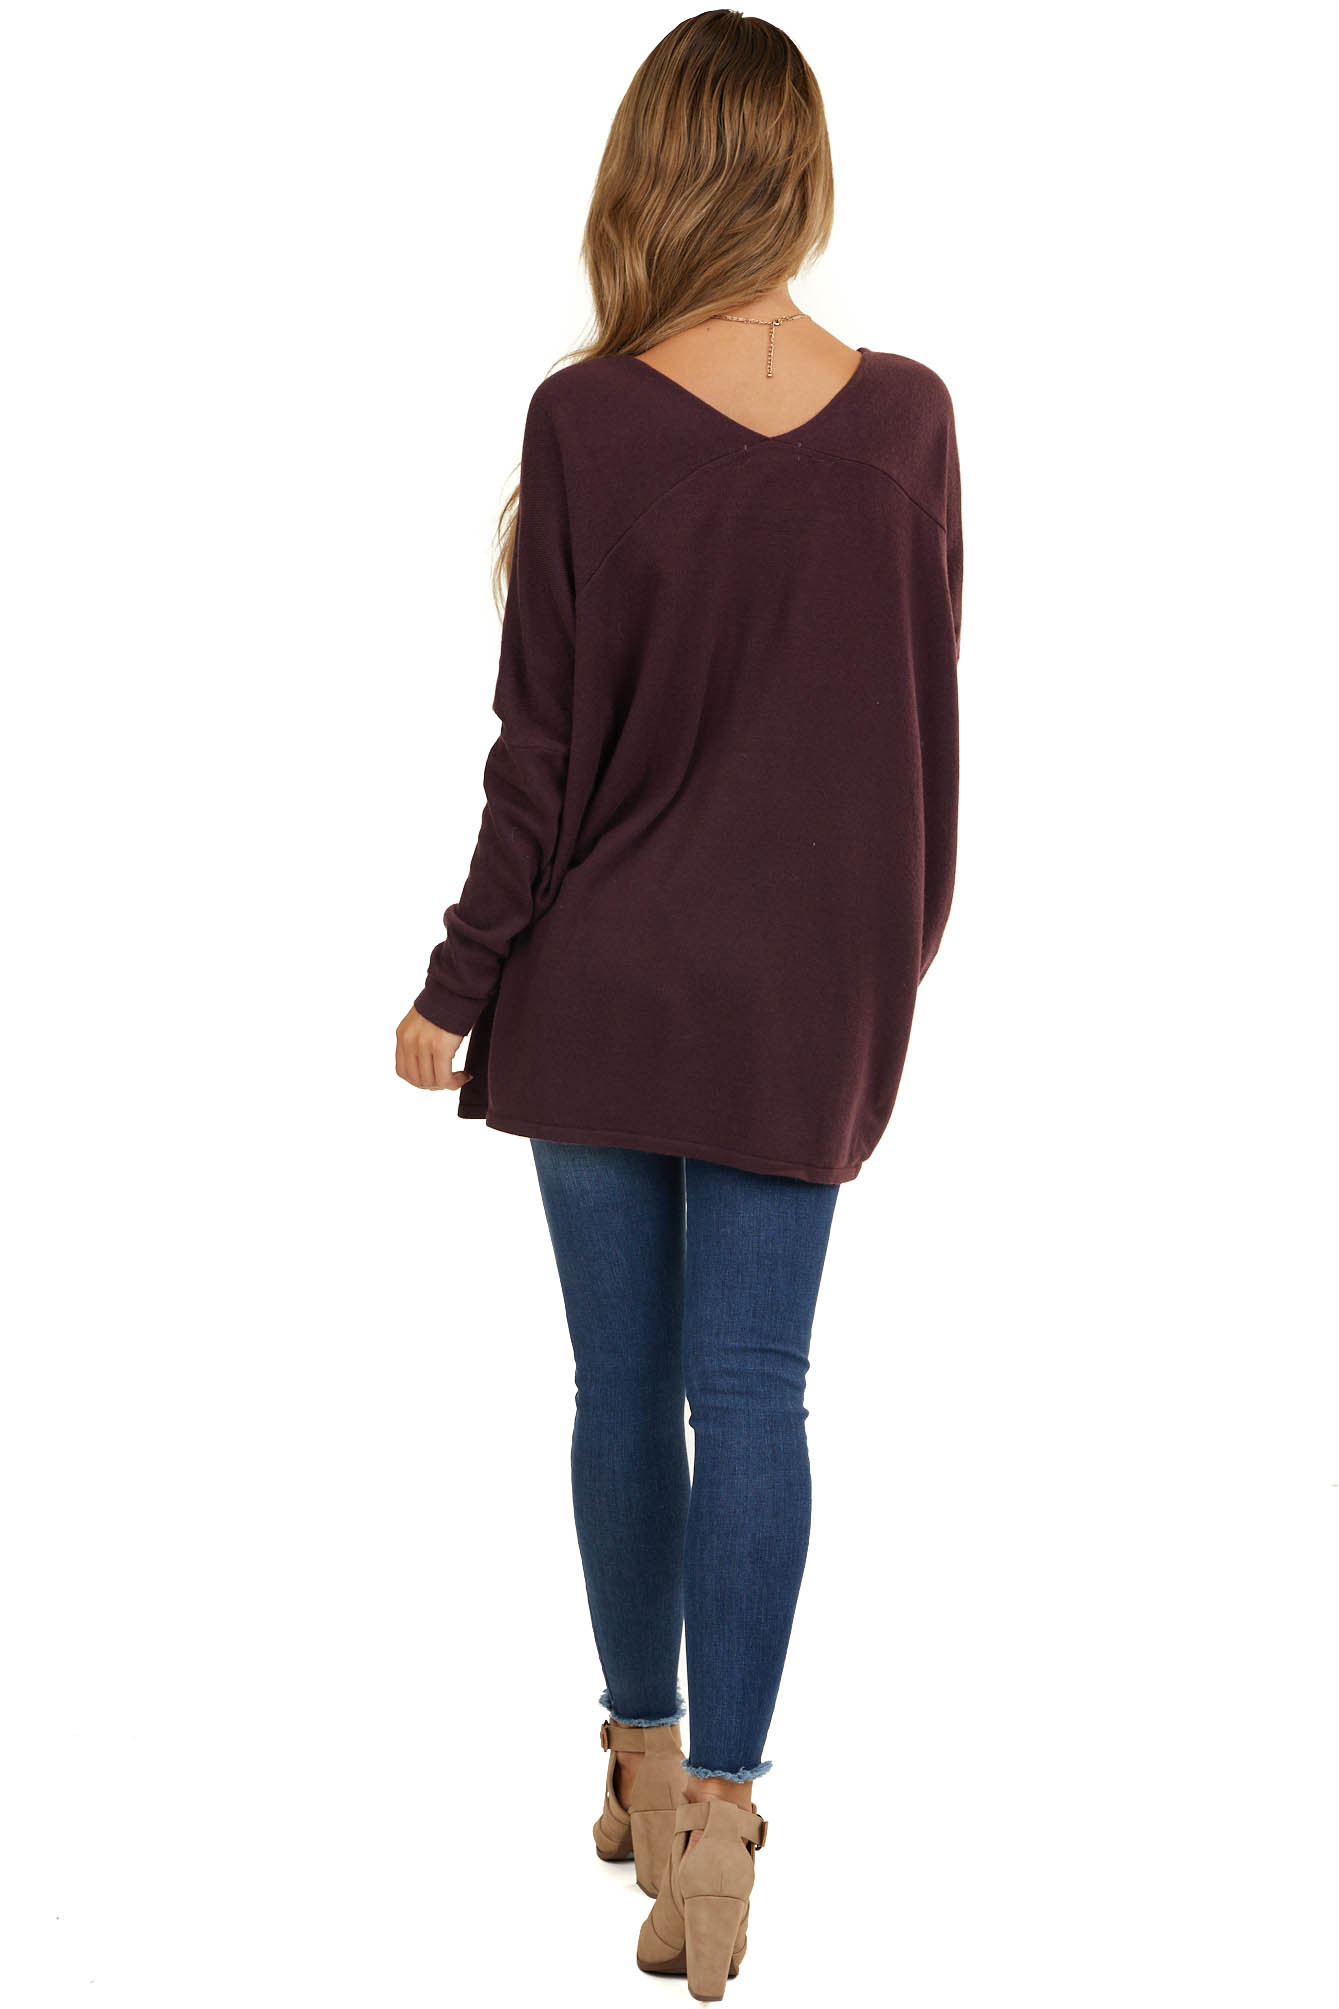 Deep Plum Long Sleeve Top with V Neckline and High Low Hem